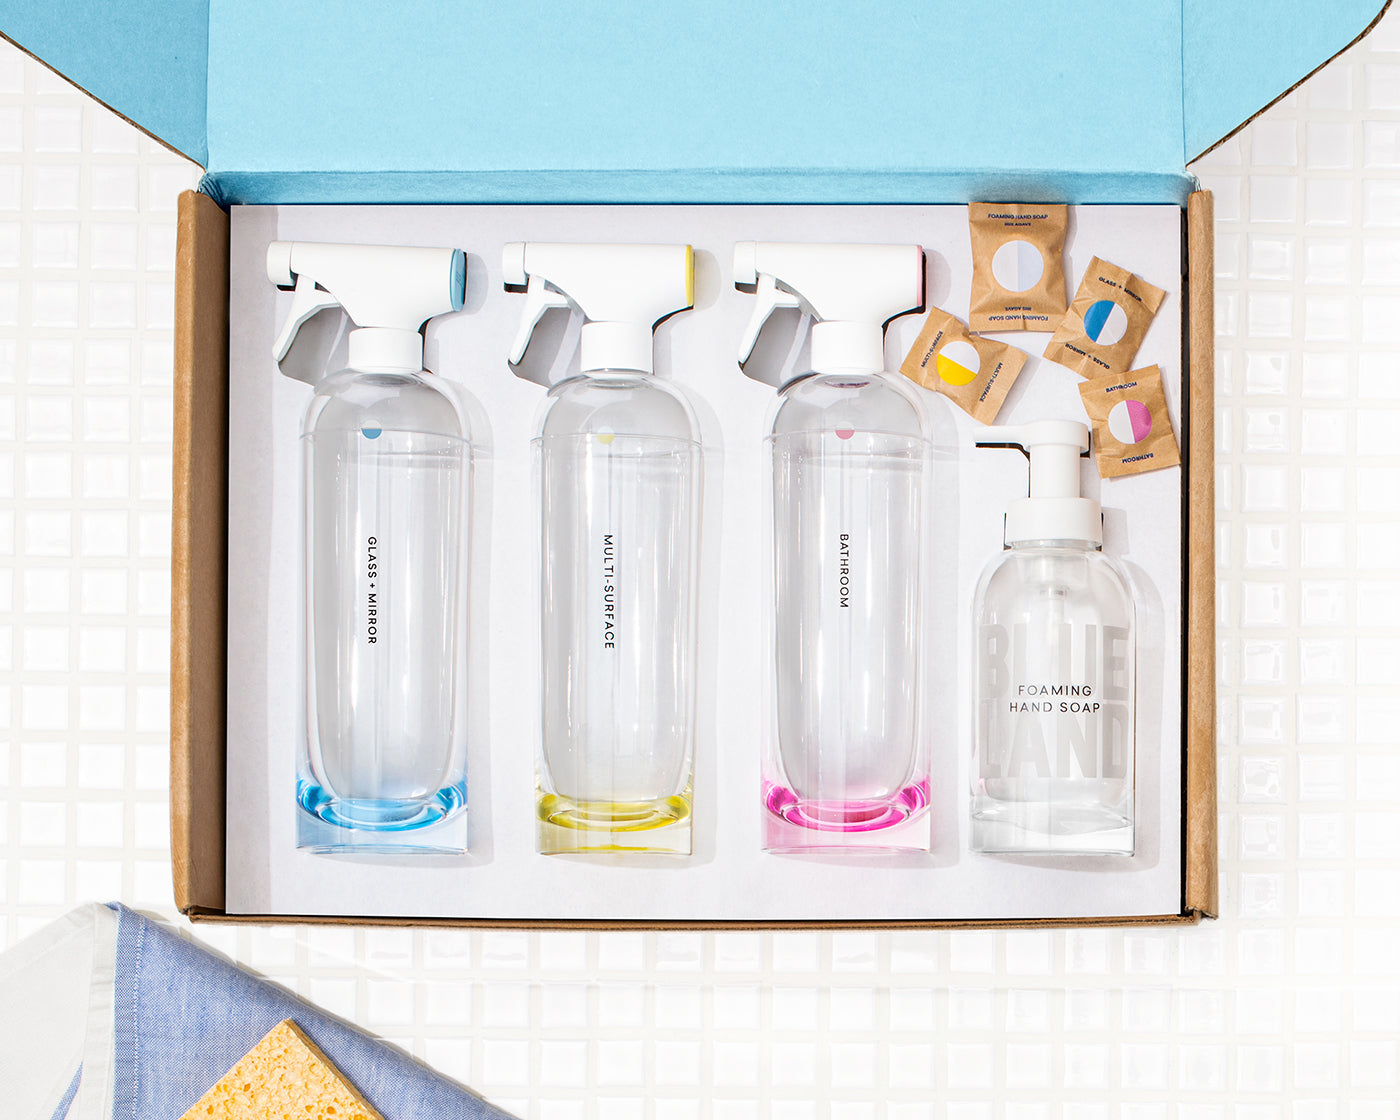 Clean Essentials Kit with one Glass + Mirror Forever Bottle, One Multi-Surface Forever Bottle, One Bathroom Cleaner Forever Bottle and one glass Foaming Hand Soap Forever bottle in the box with four cleaning tablets agains white tile background with sponge in the corner